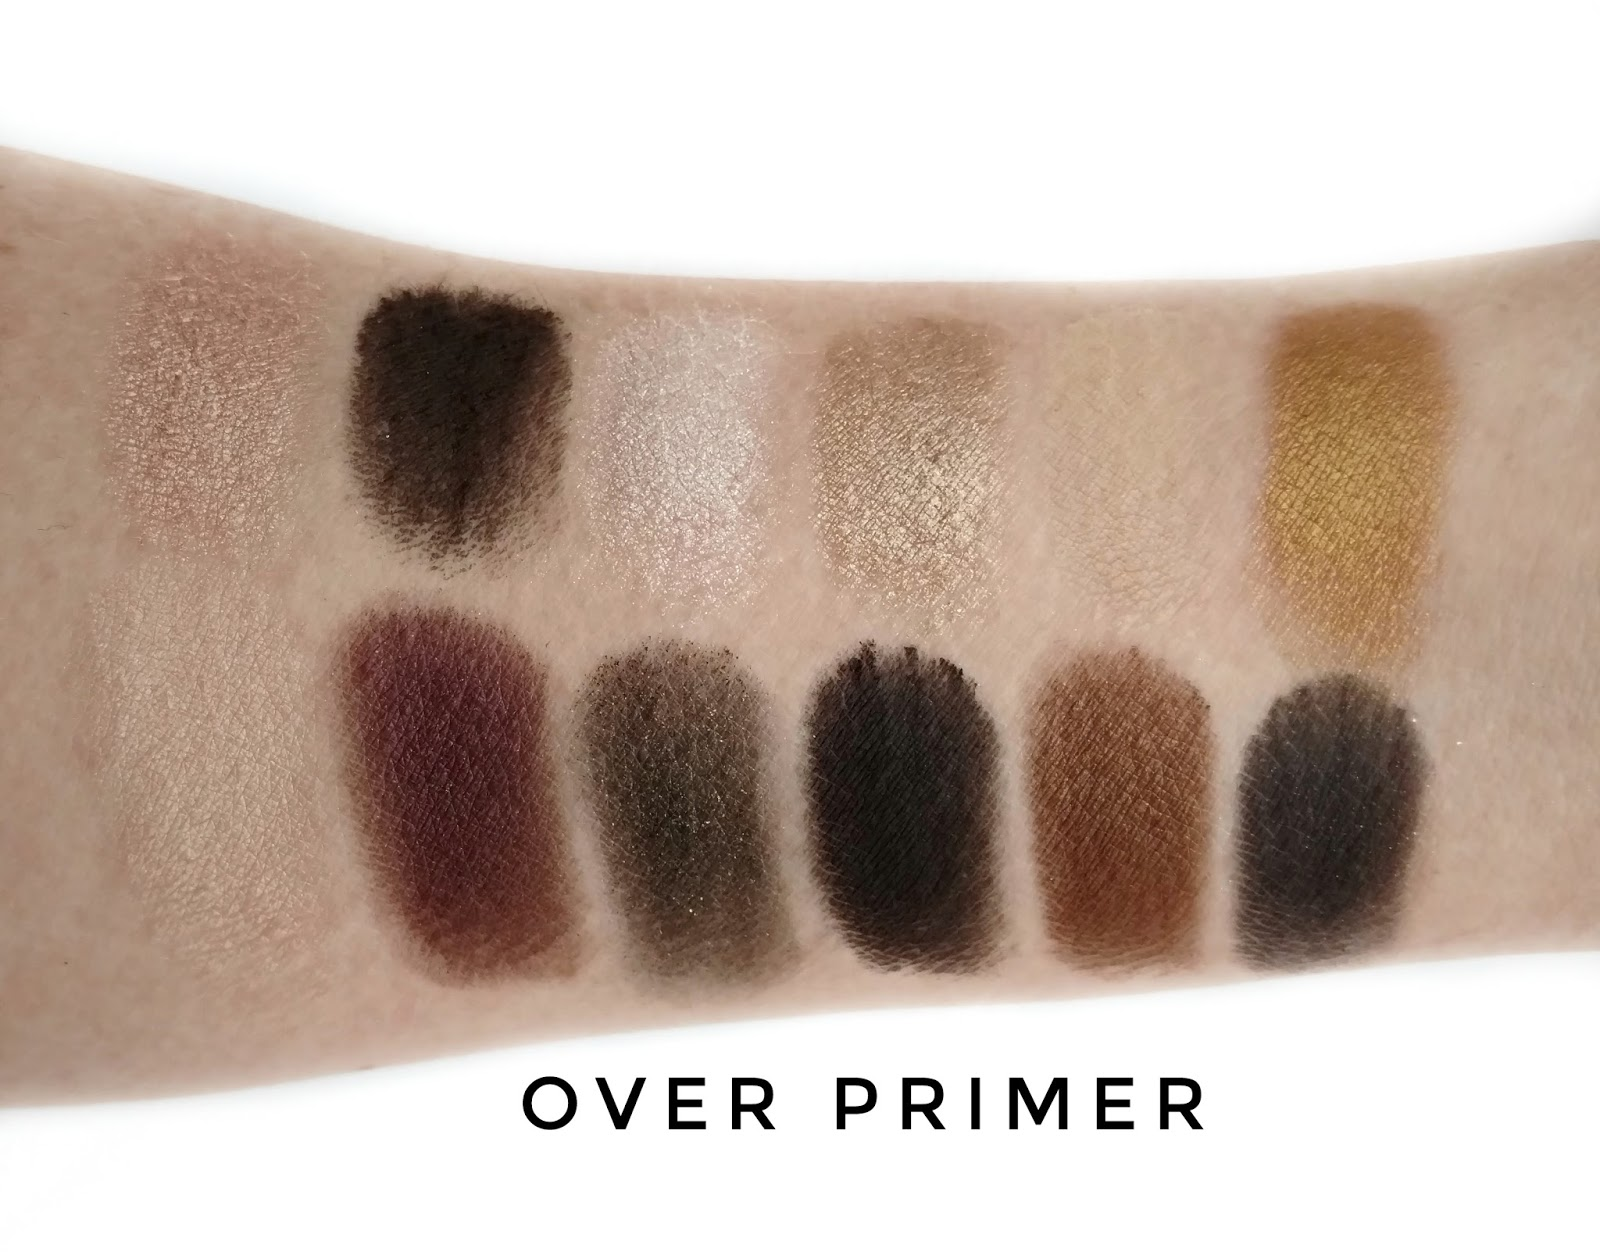 maybelline 24k nudes palette swatches